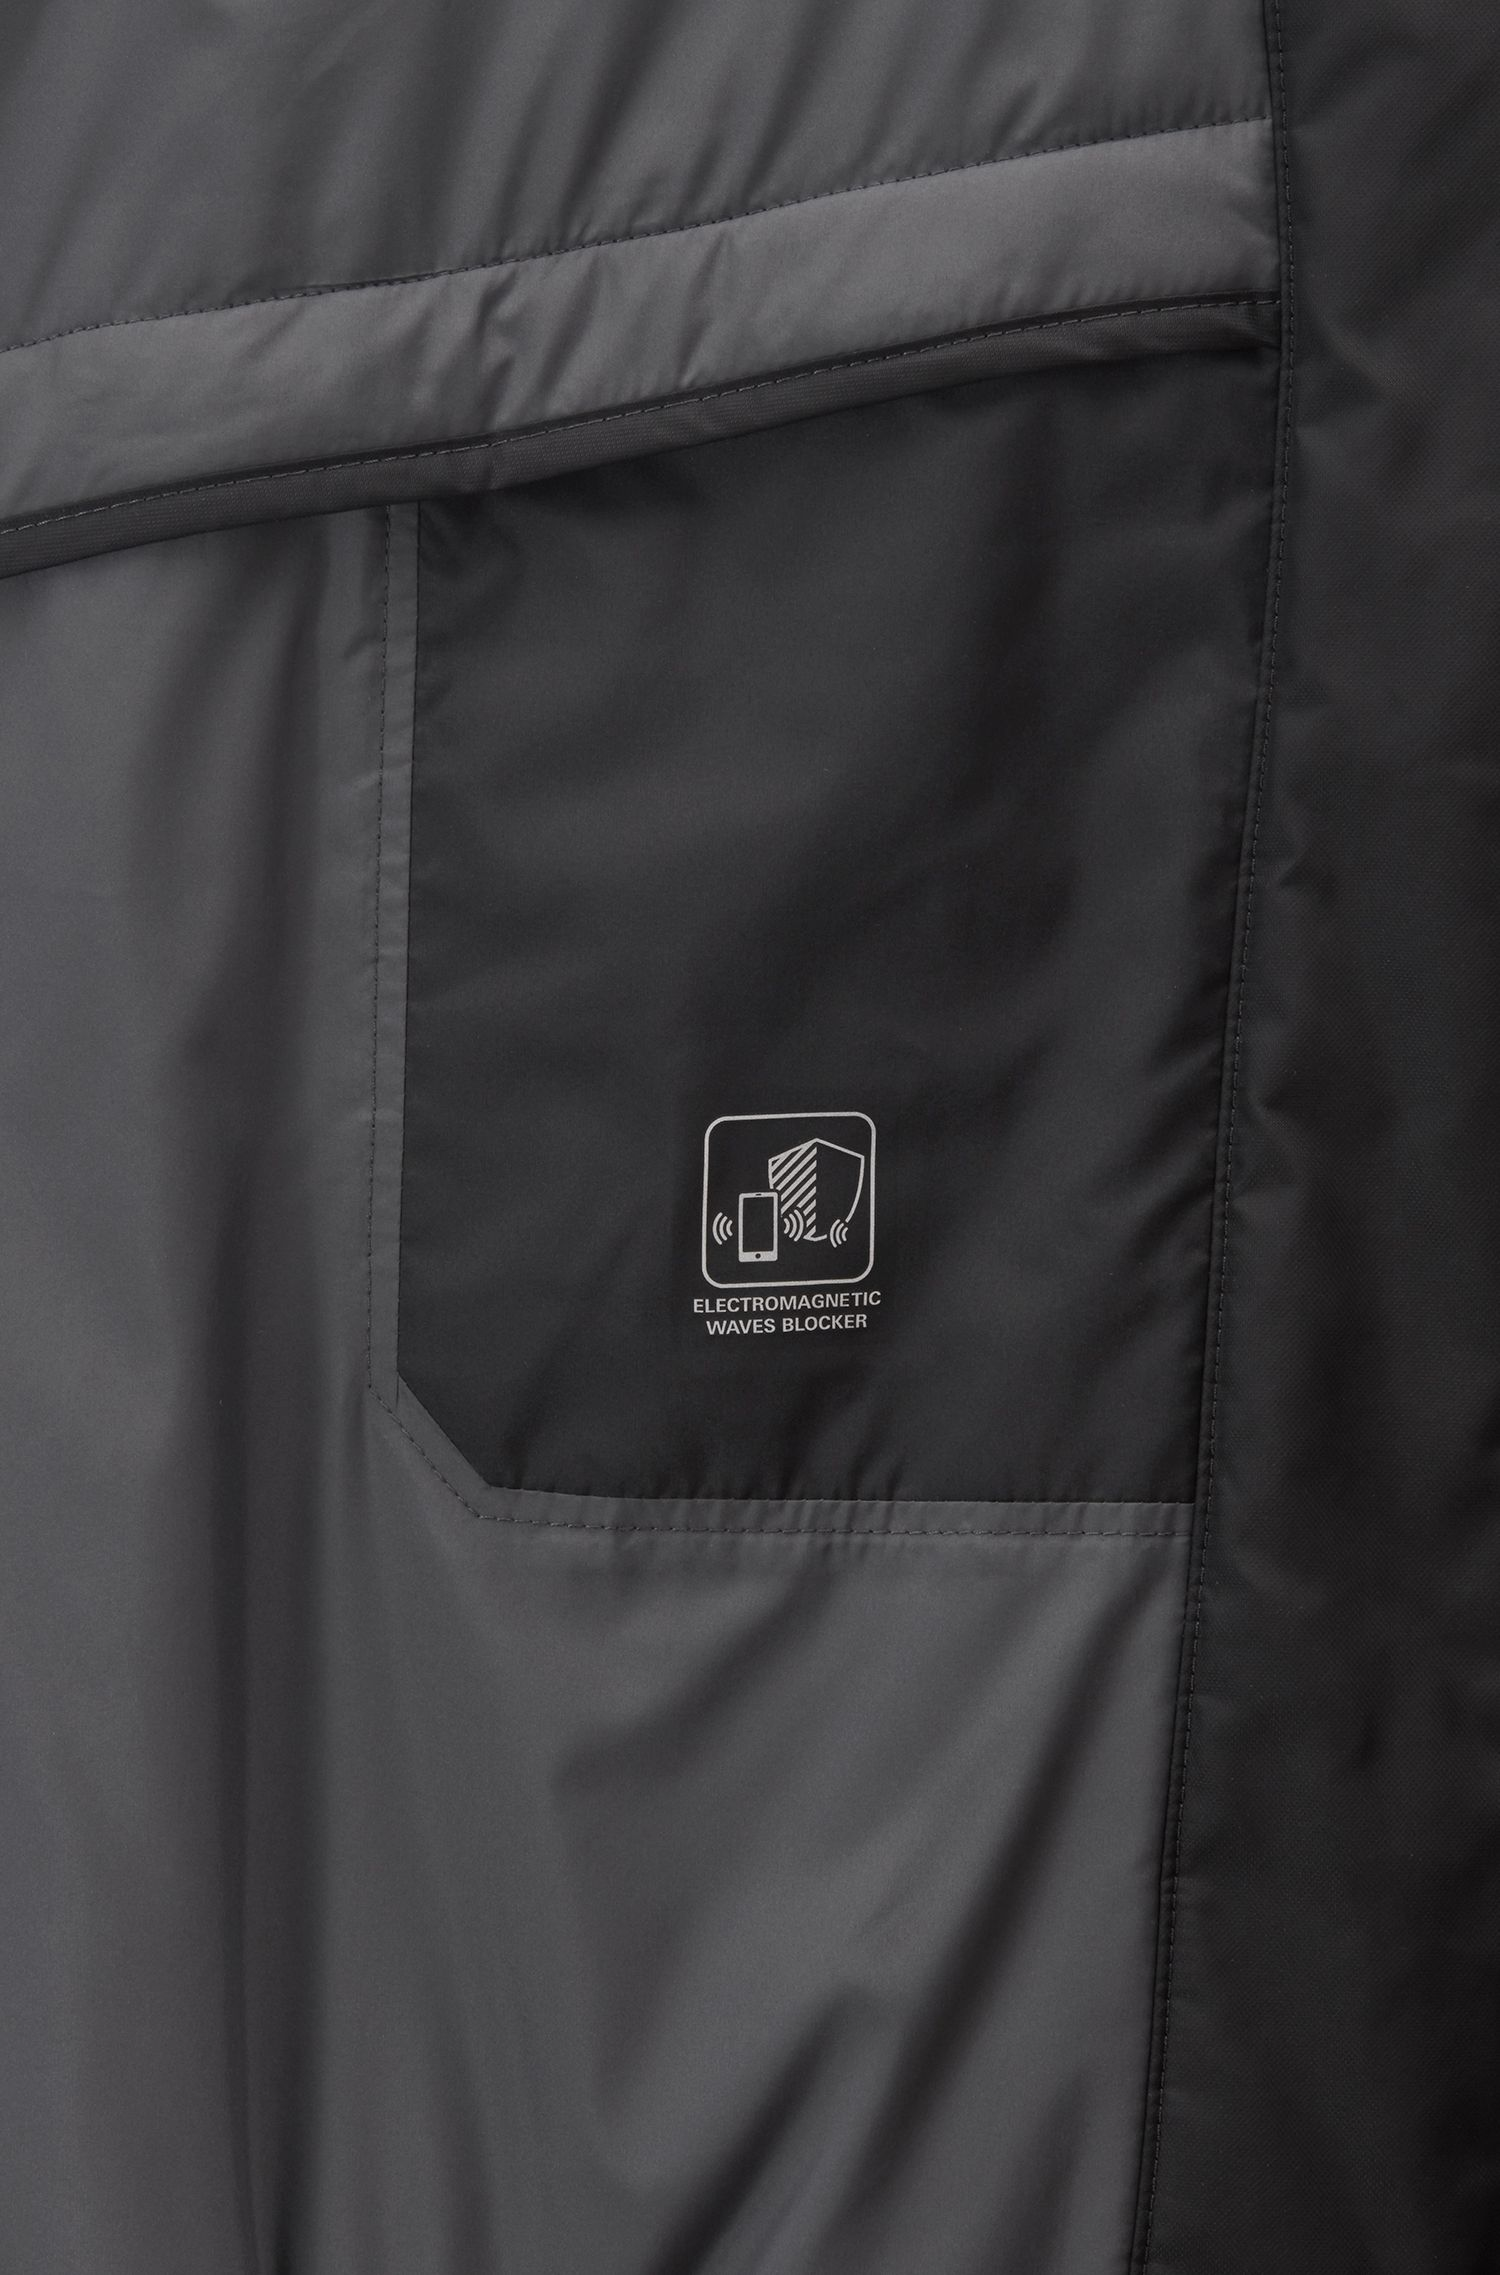 Water-repellent padded jacket with electromagnetic-wave blocker